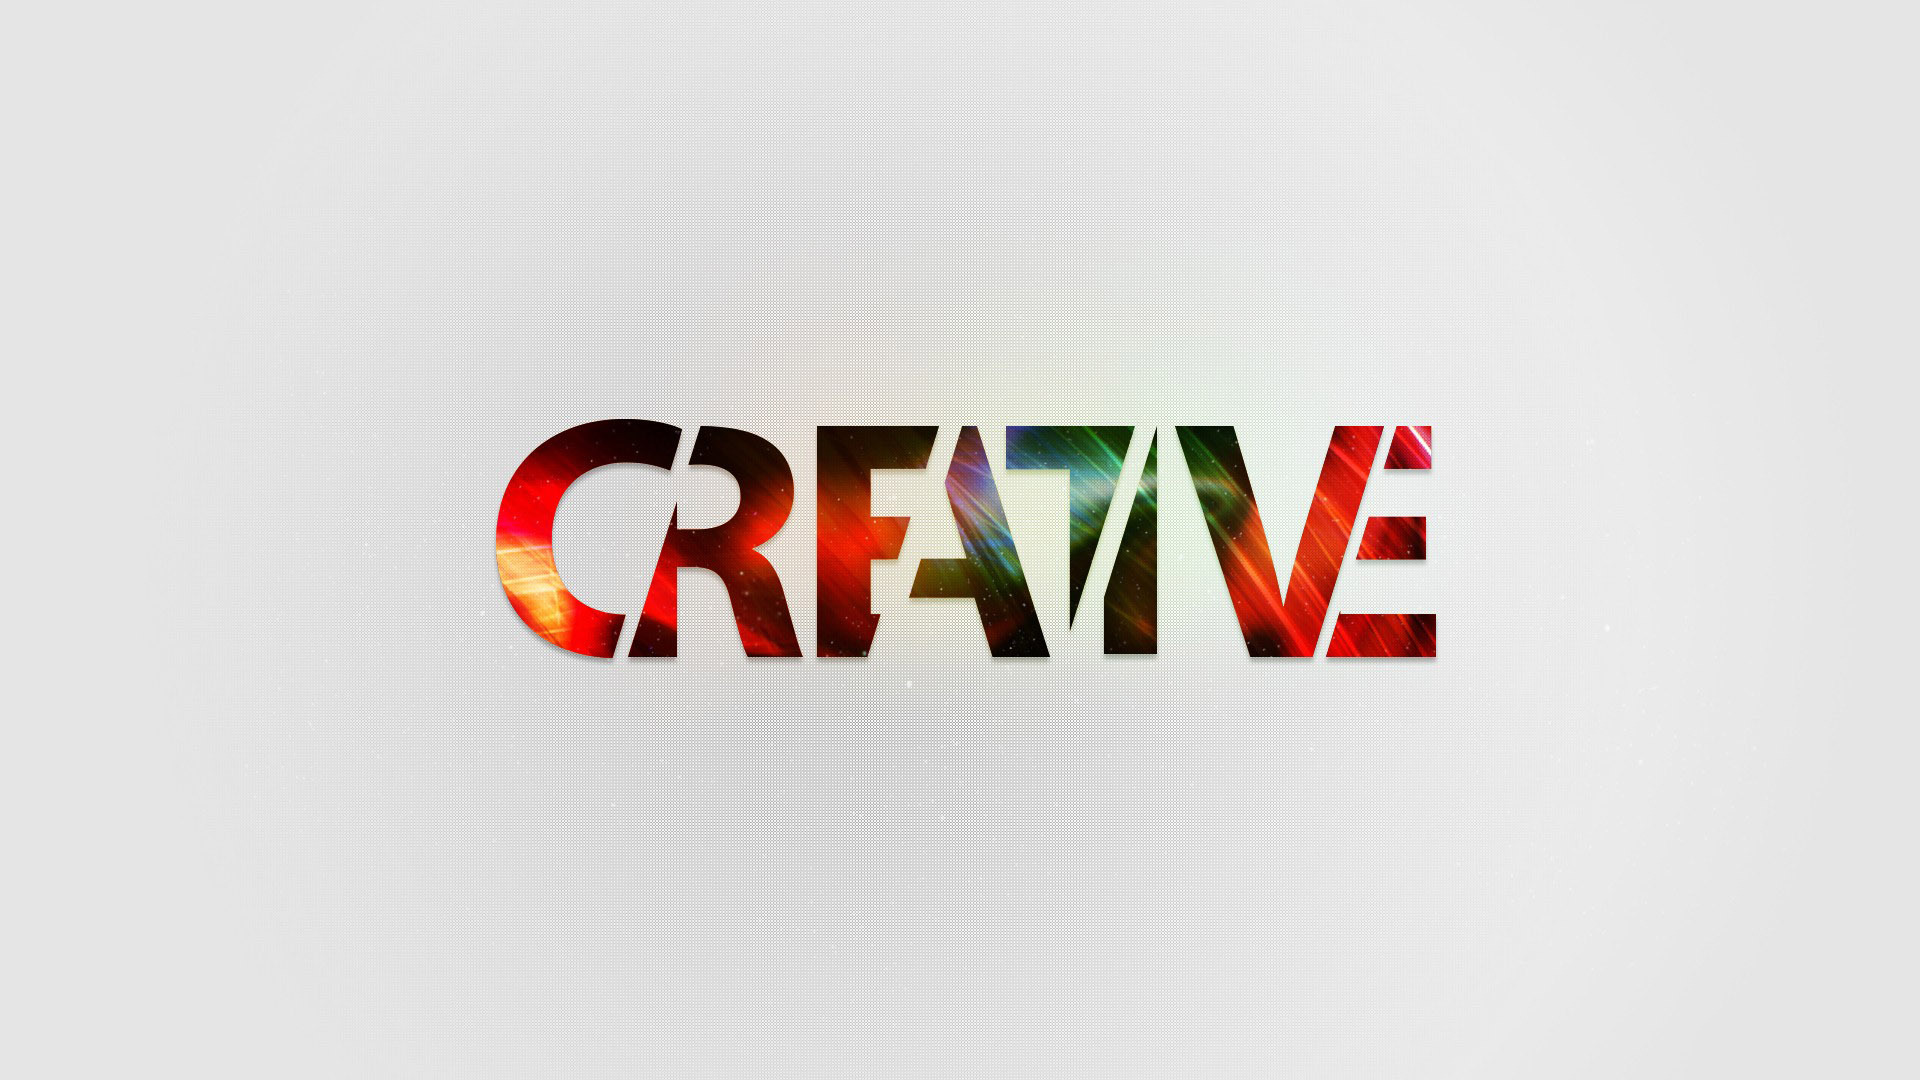 Does Creativity Make A Great Ad Vacantboards